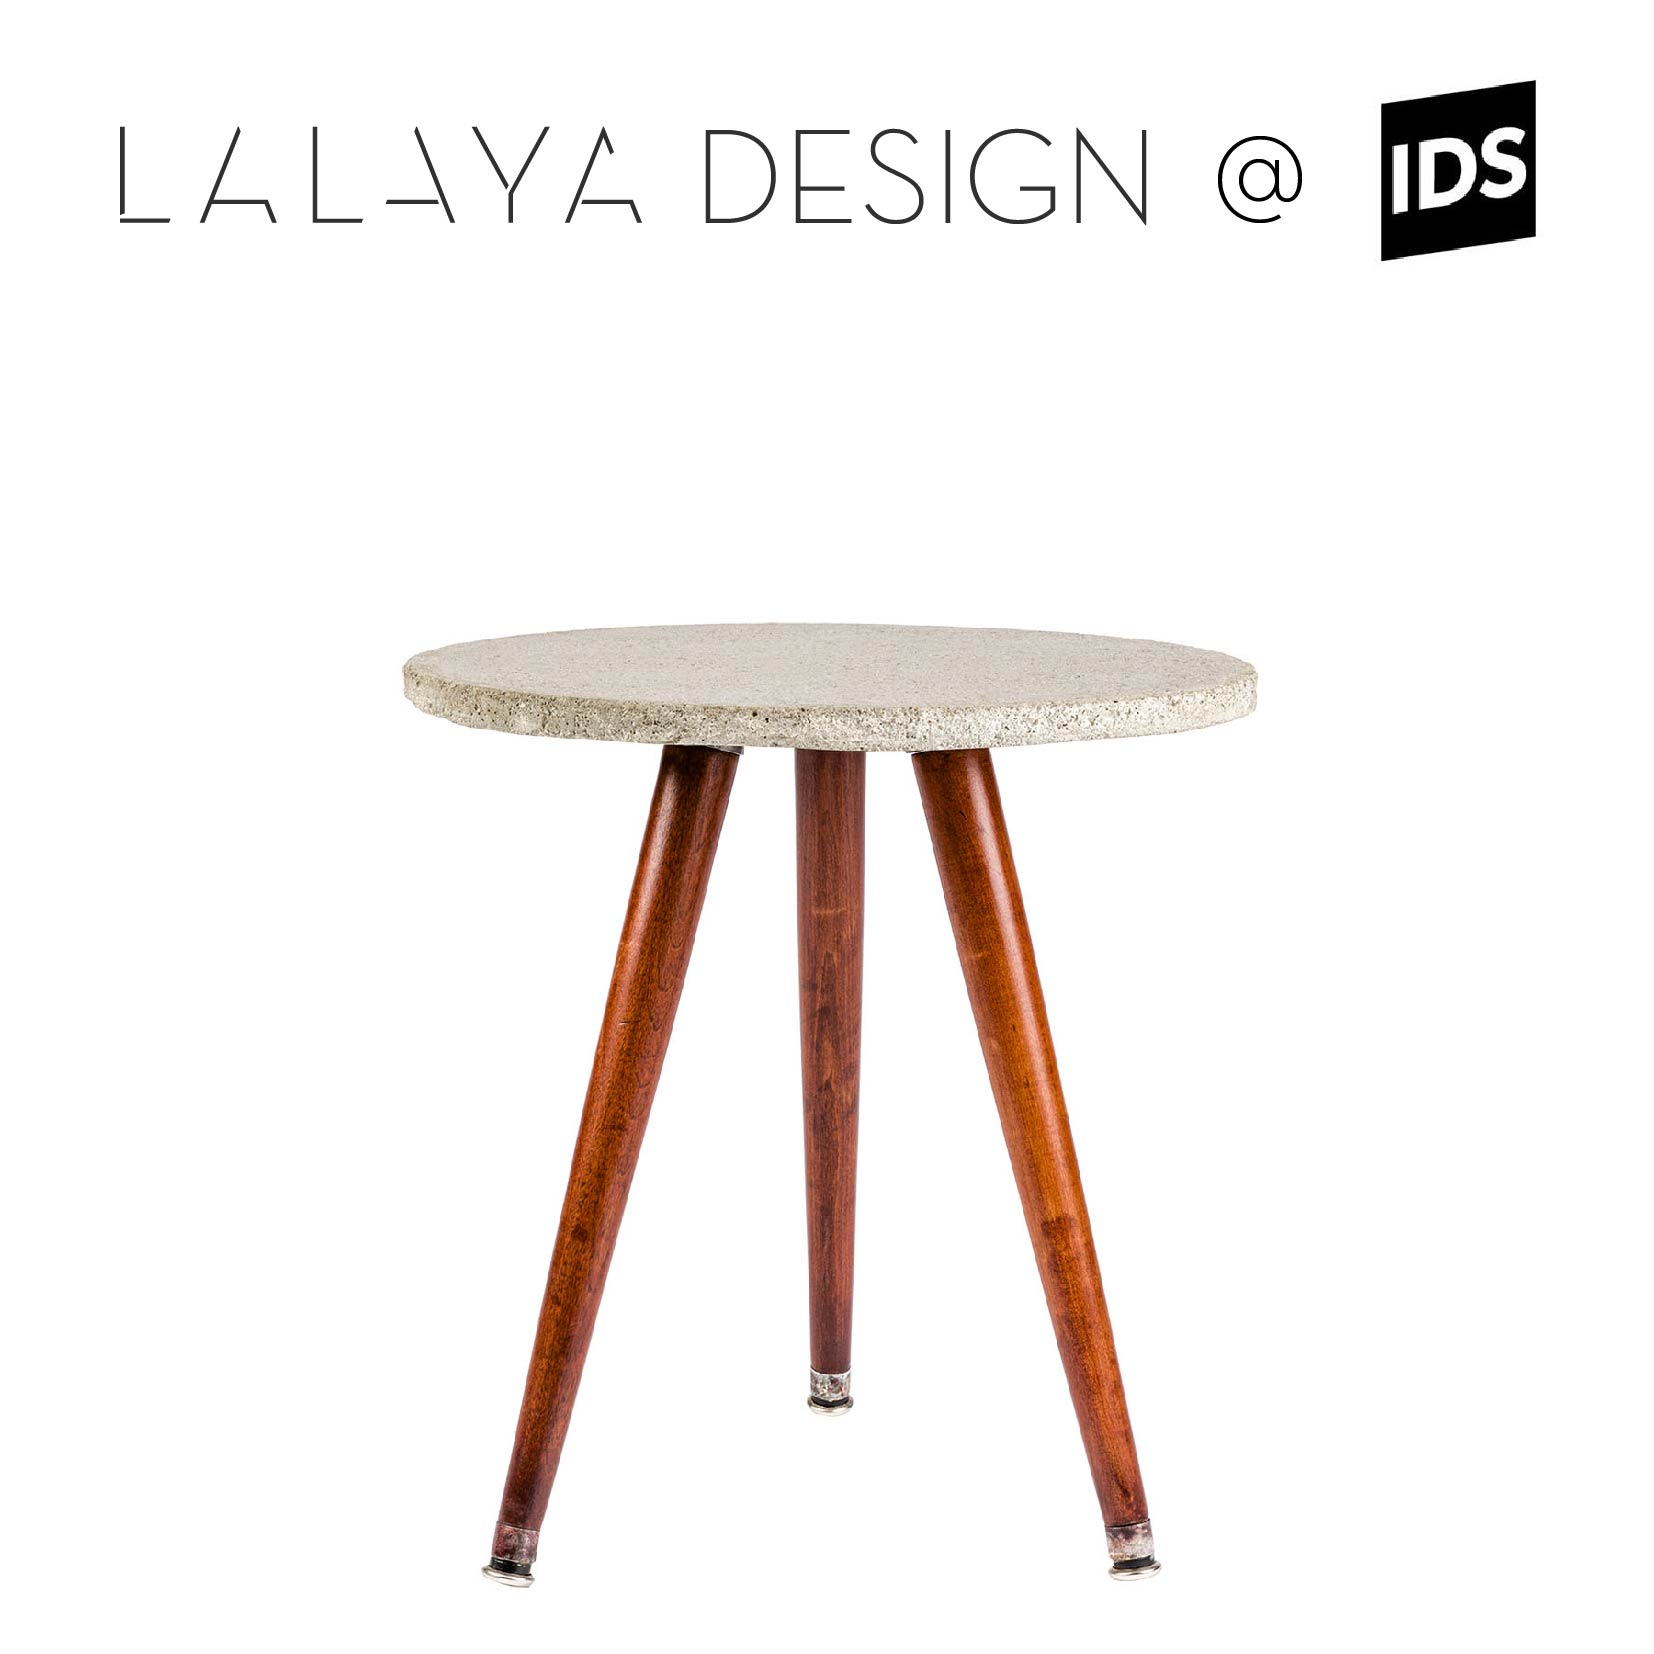 LALAYA Design Debuts at IDS 2018